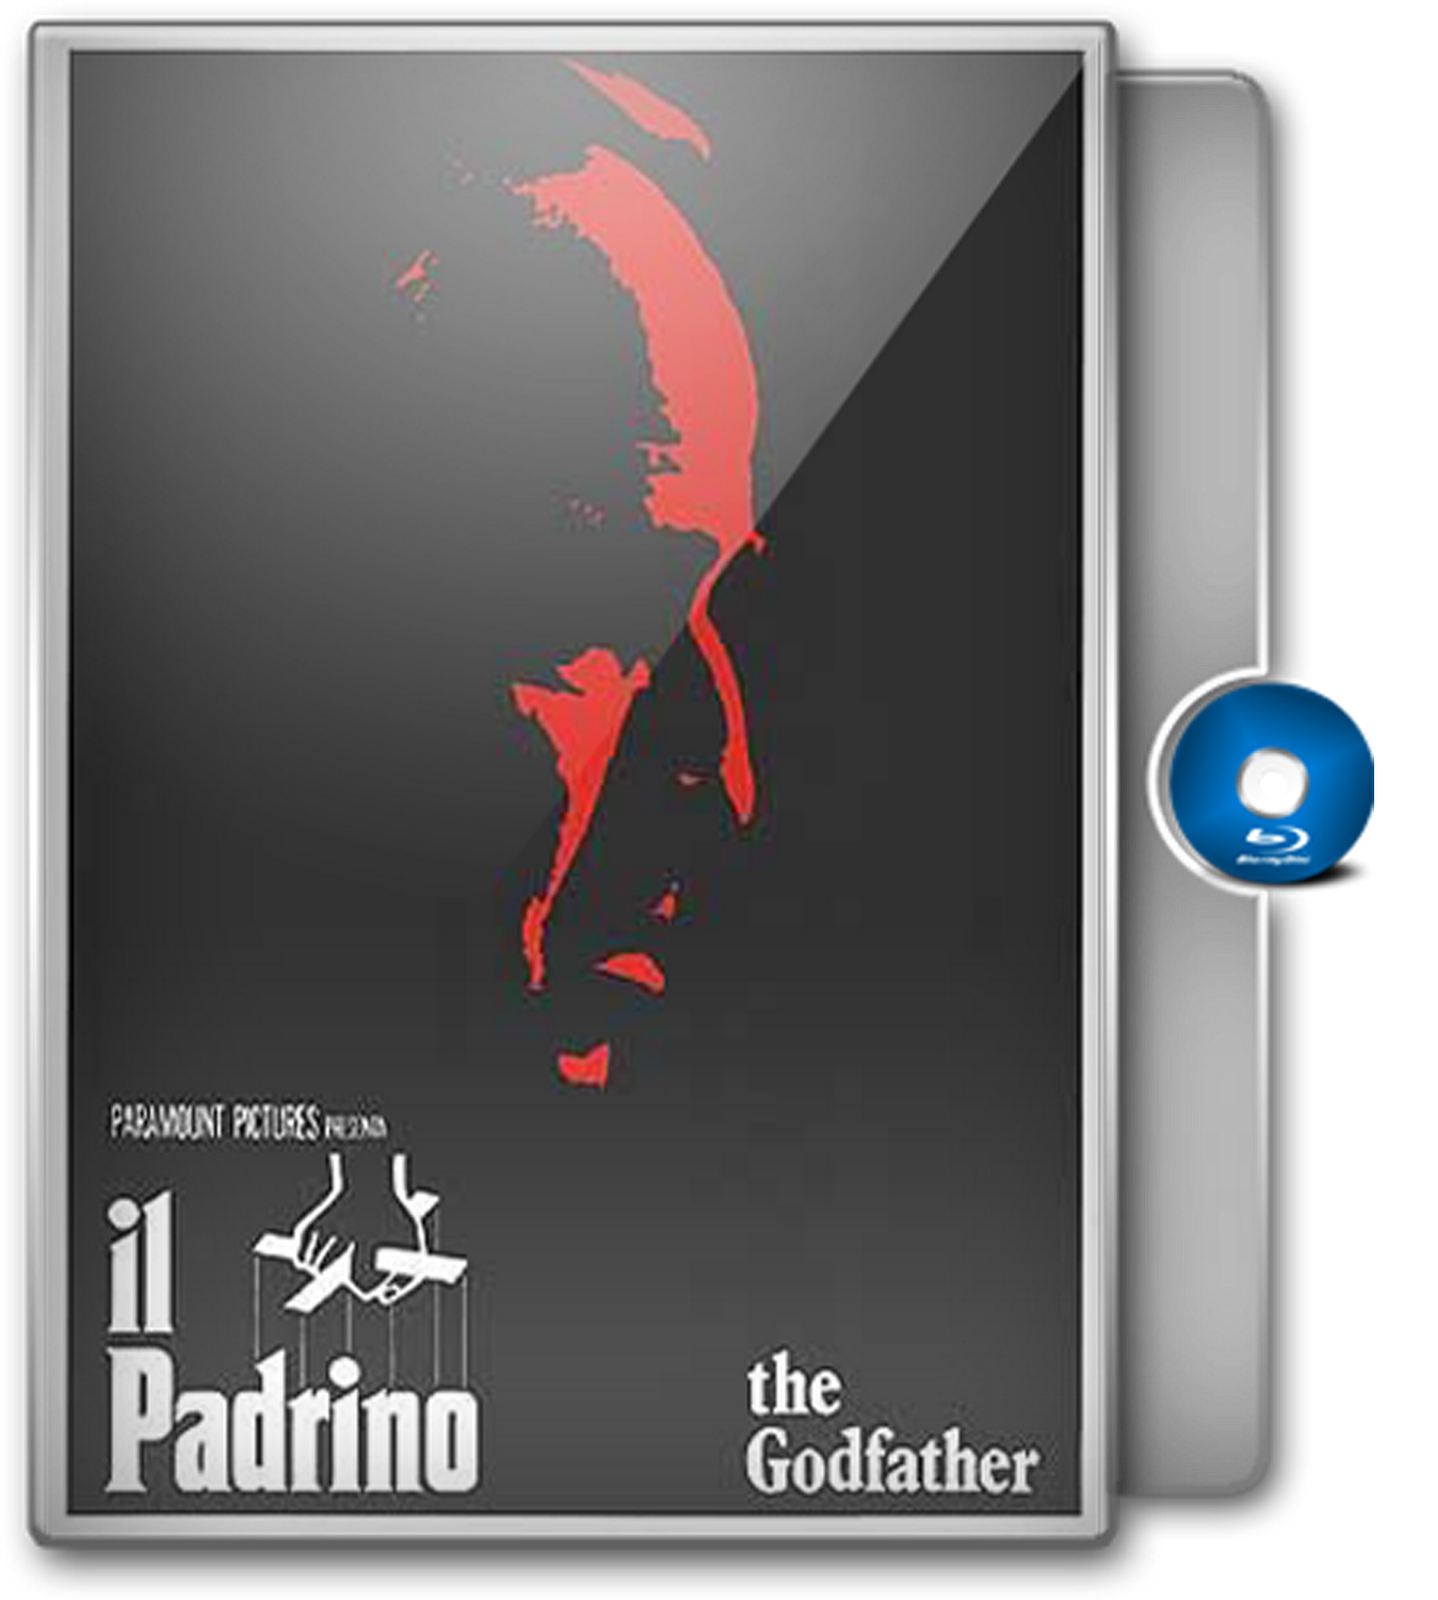 Il Padrino The Godfather Blu-ray Case